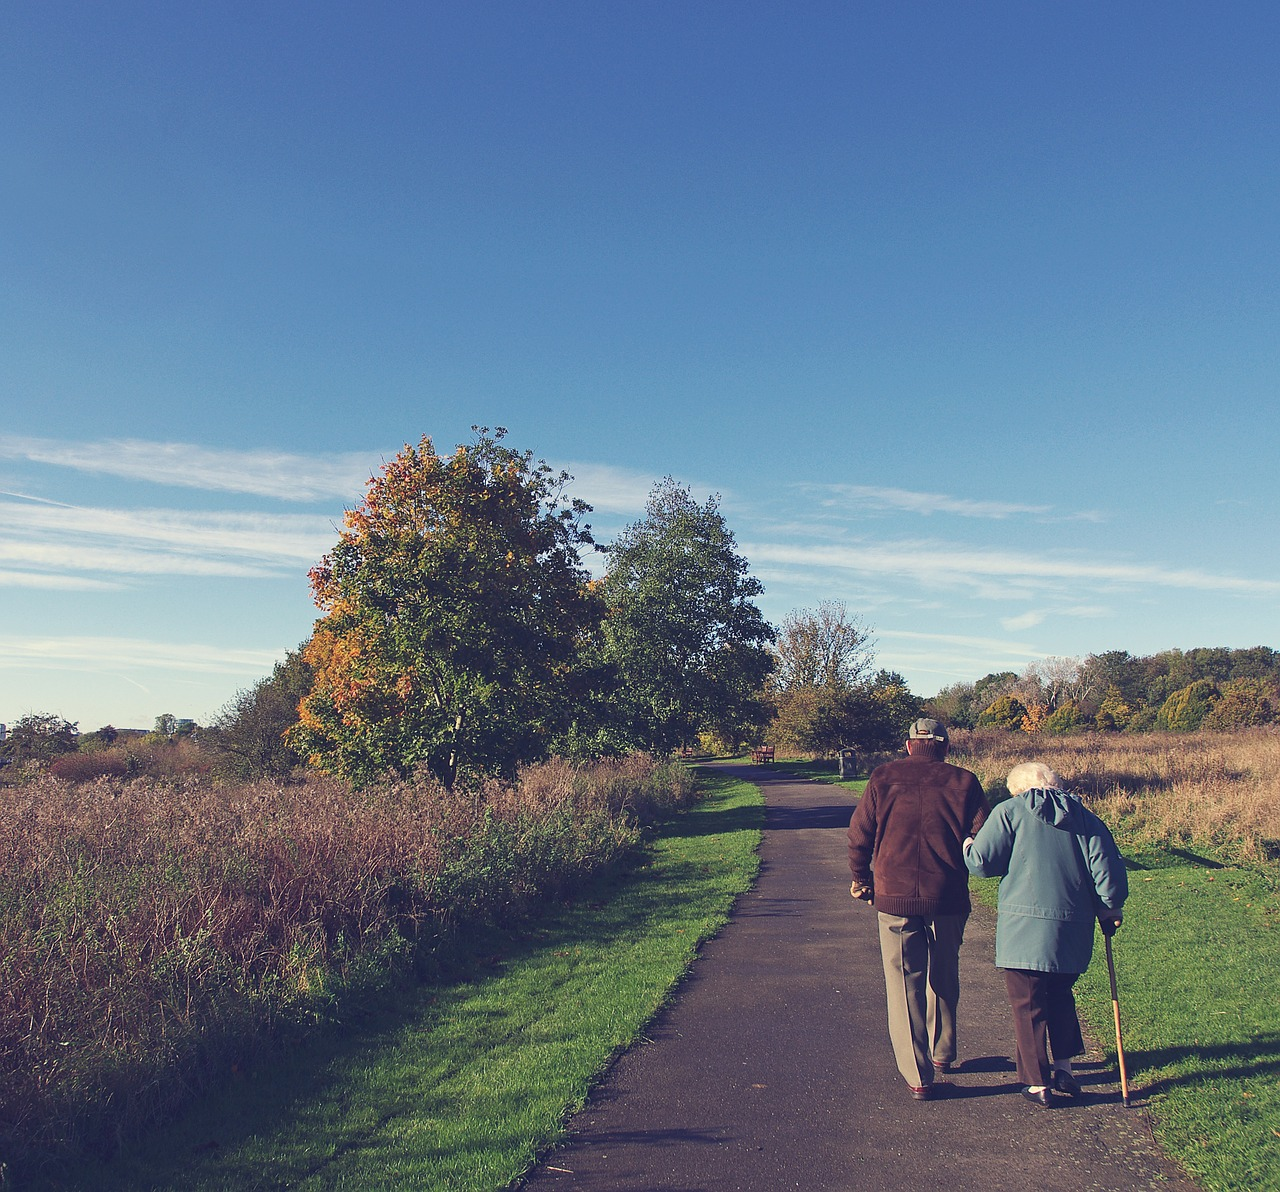 An elderly couple walking in the countryside and discussing the best places to retire in Idaho.